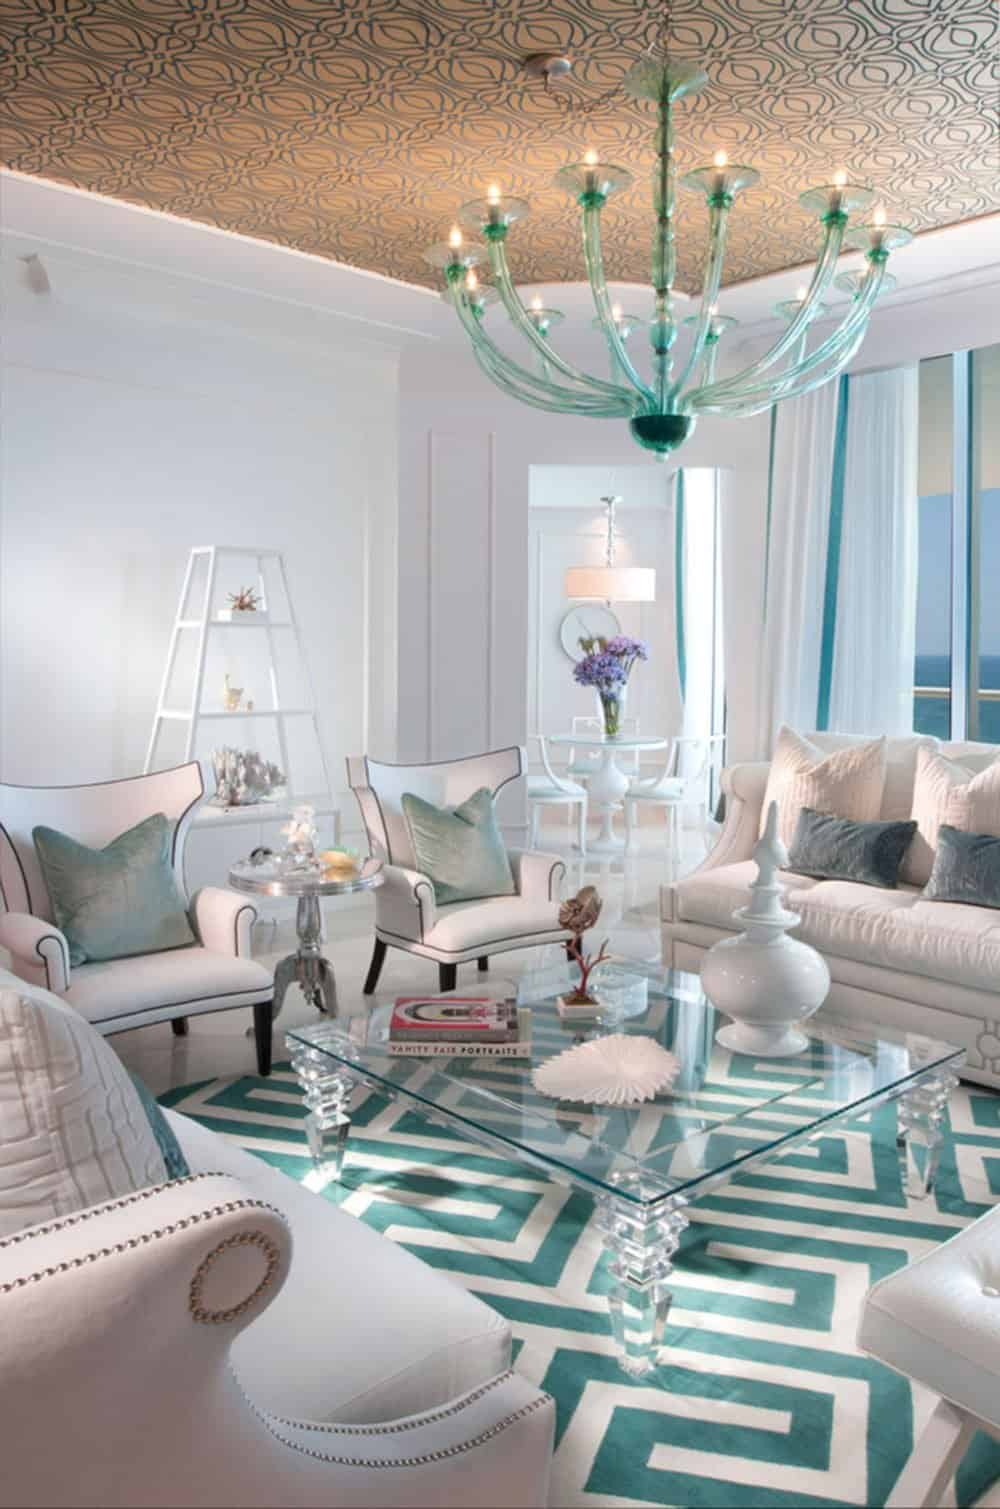 turquoise living room curtains interior design is always good idea6 accessories color wheel rustic wall decor home accents and brown white bedroom ideas